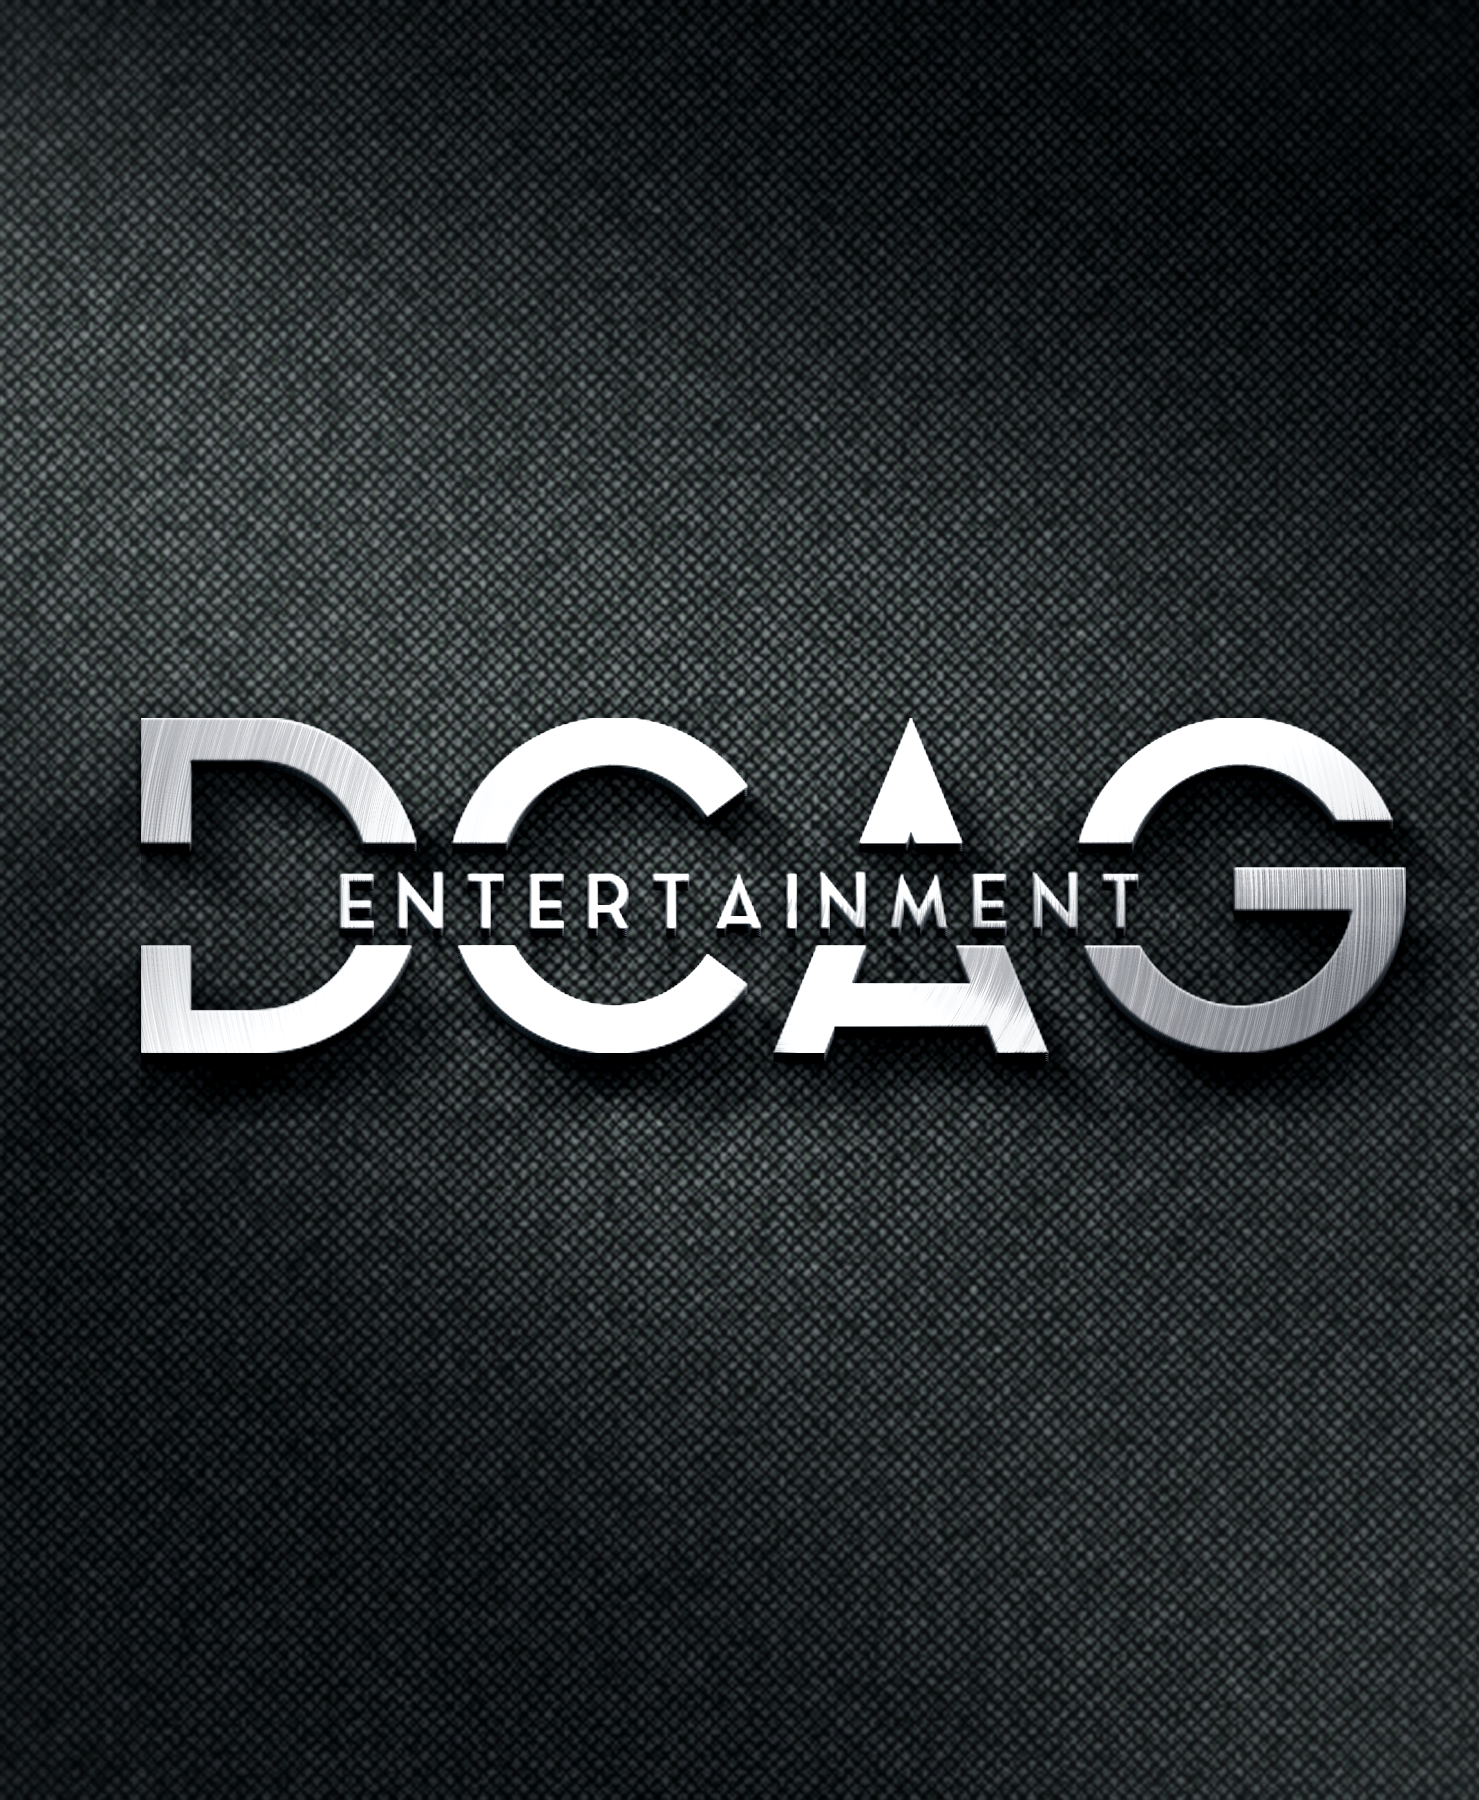 dcag_entertainment.png